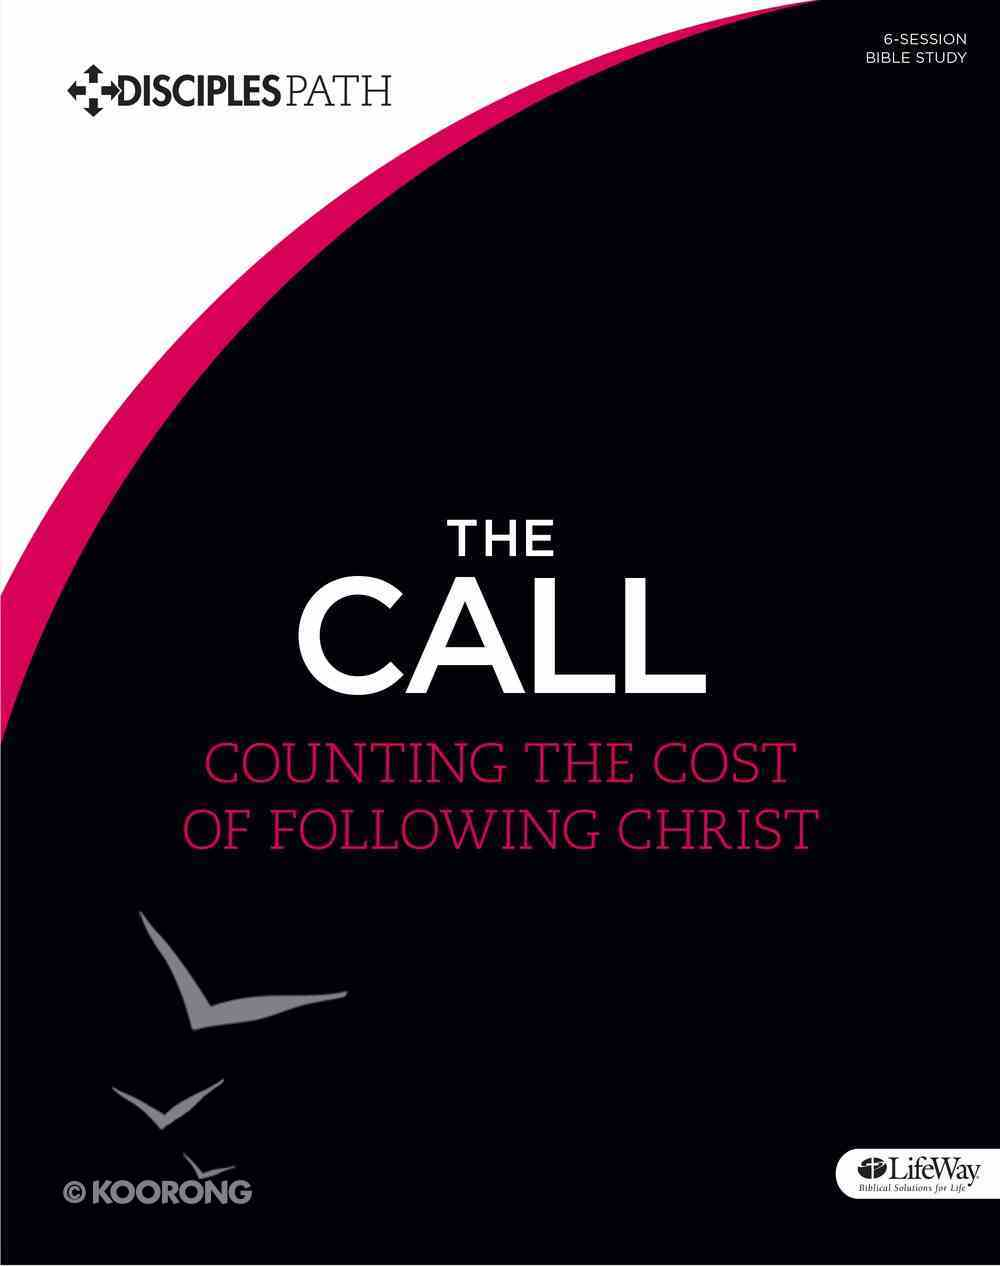 The Call (Bible Study Book) (Disciple's Path Series) Paperback